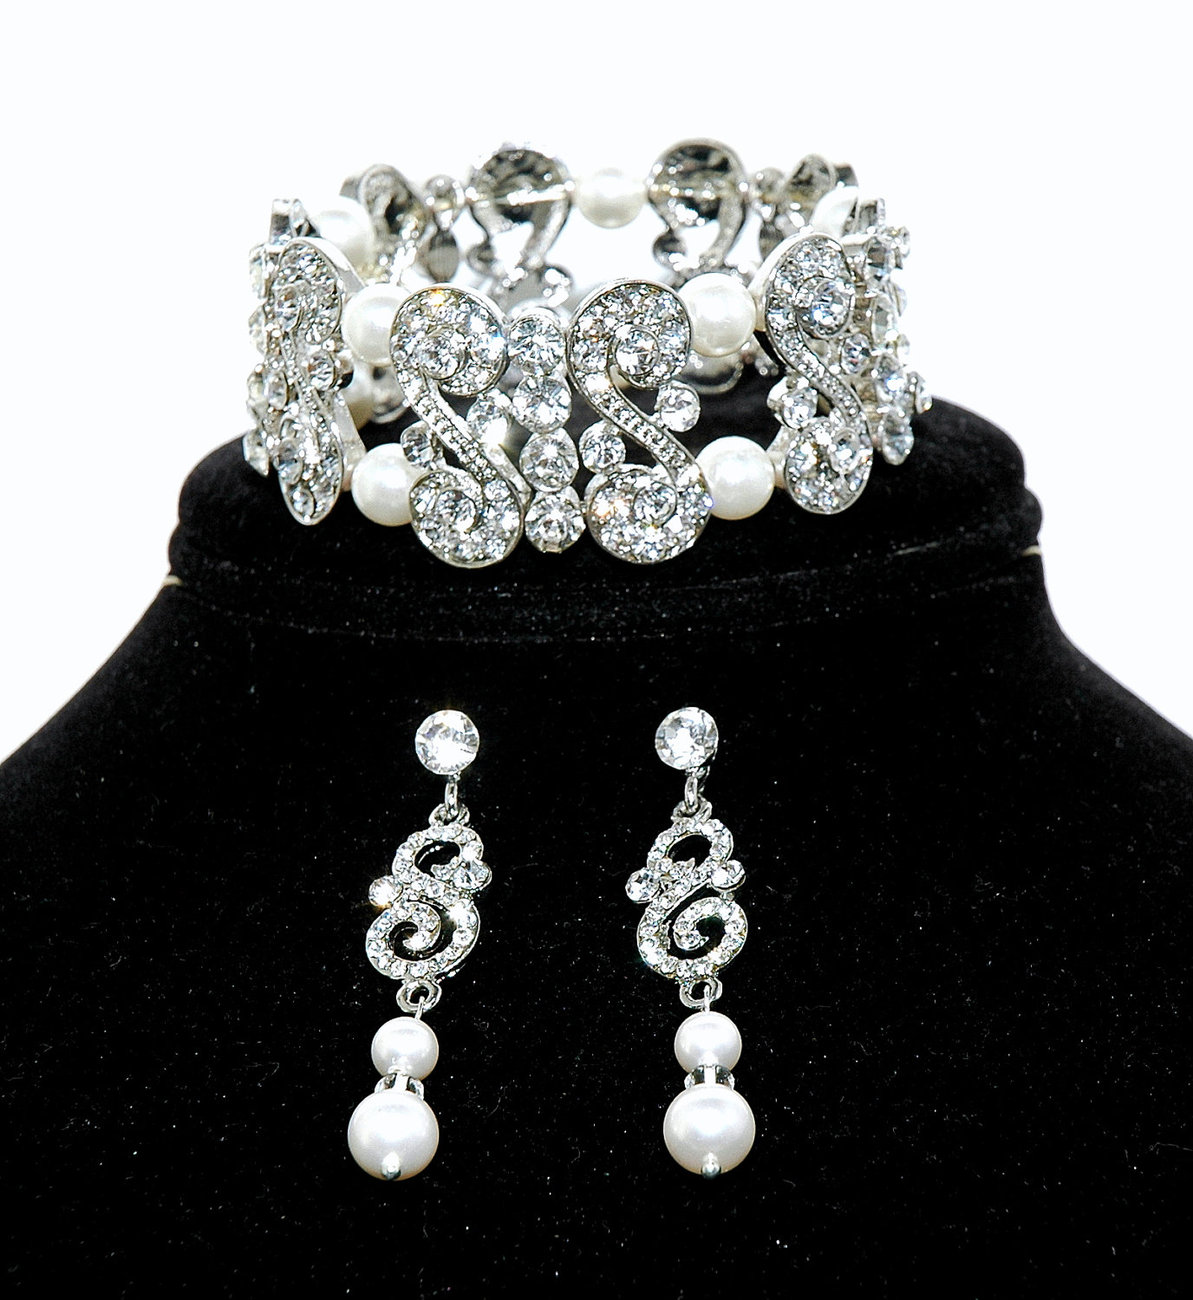 Bridal Bracelet Set Rhinestone Earrings Wedding Pearl J